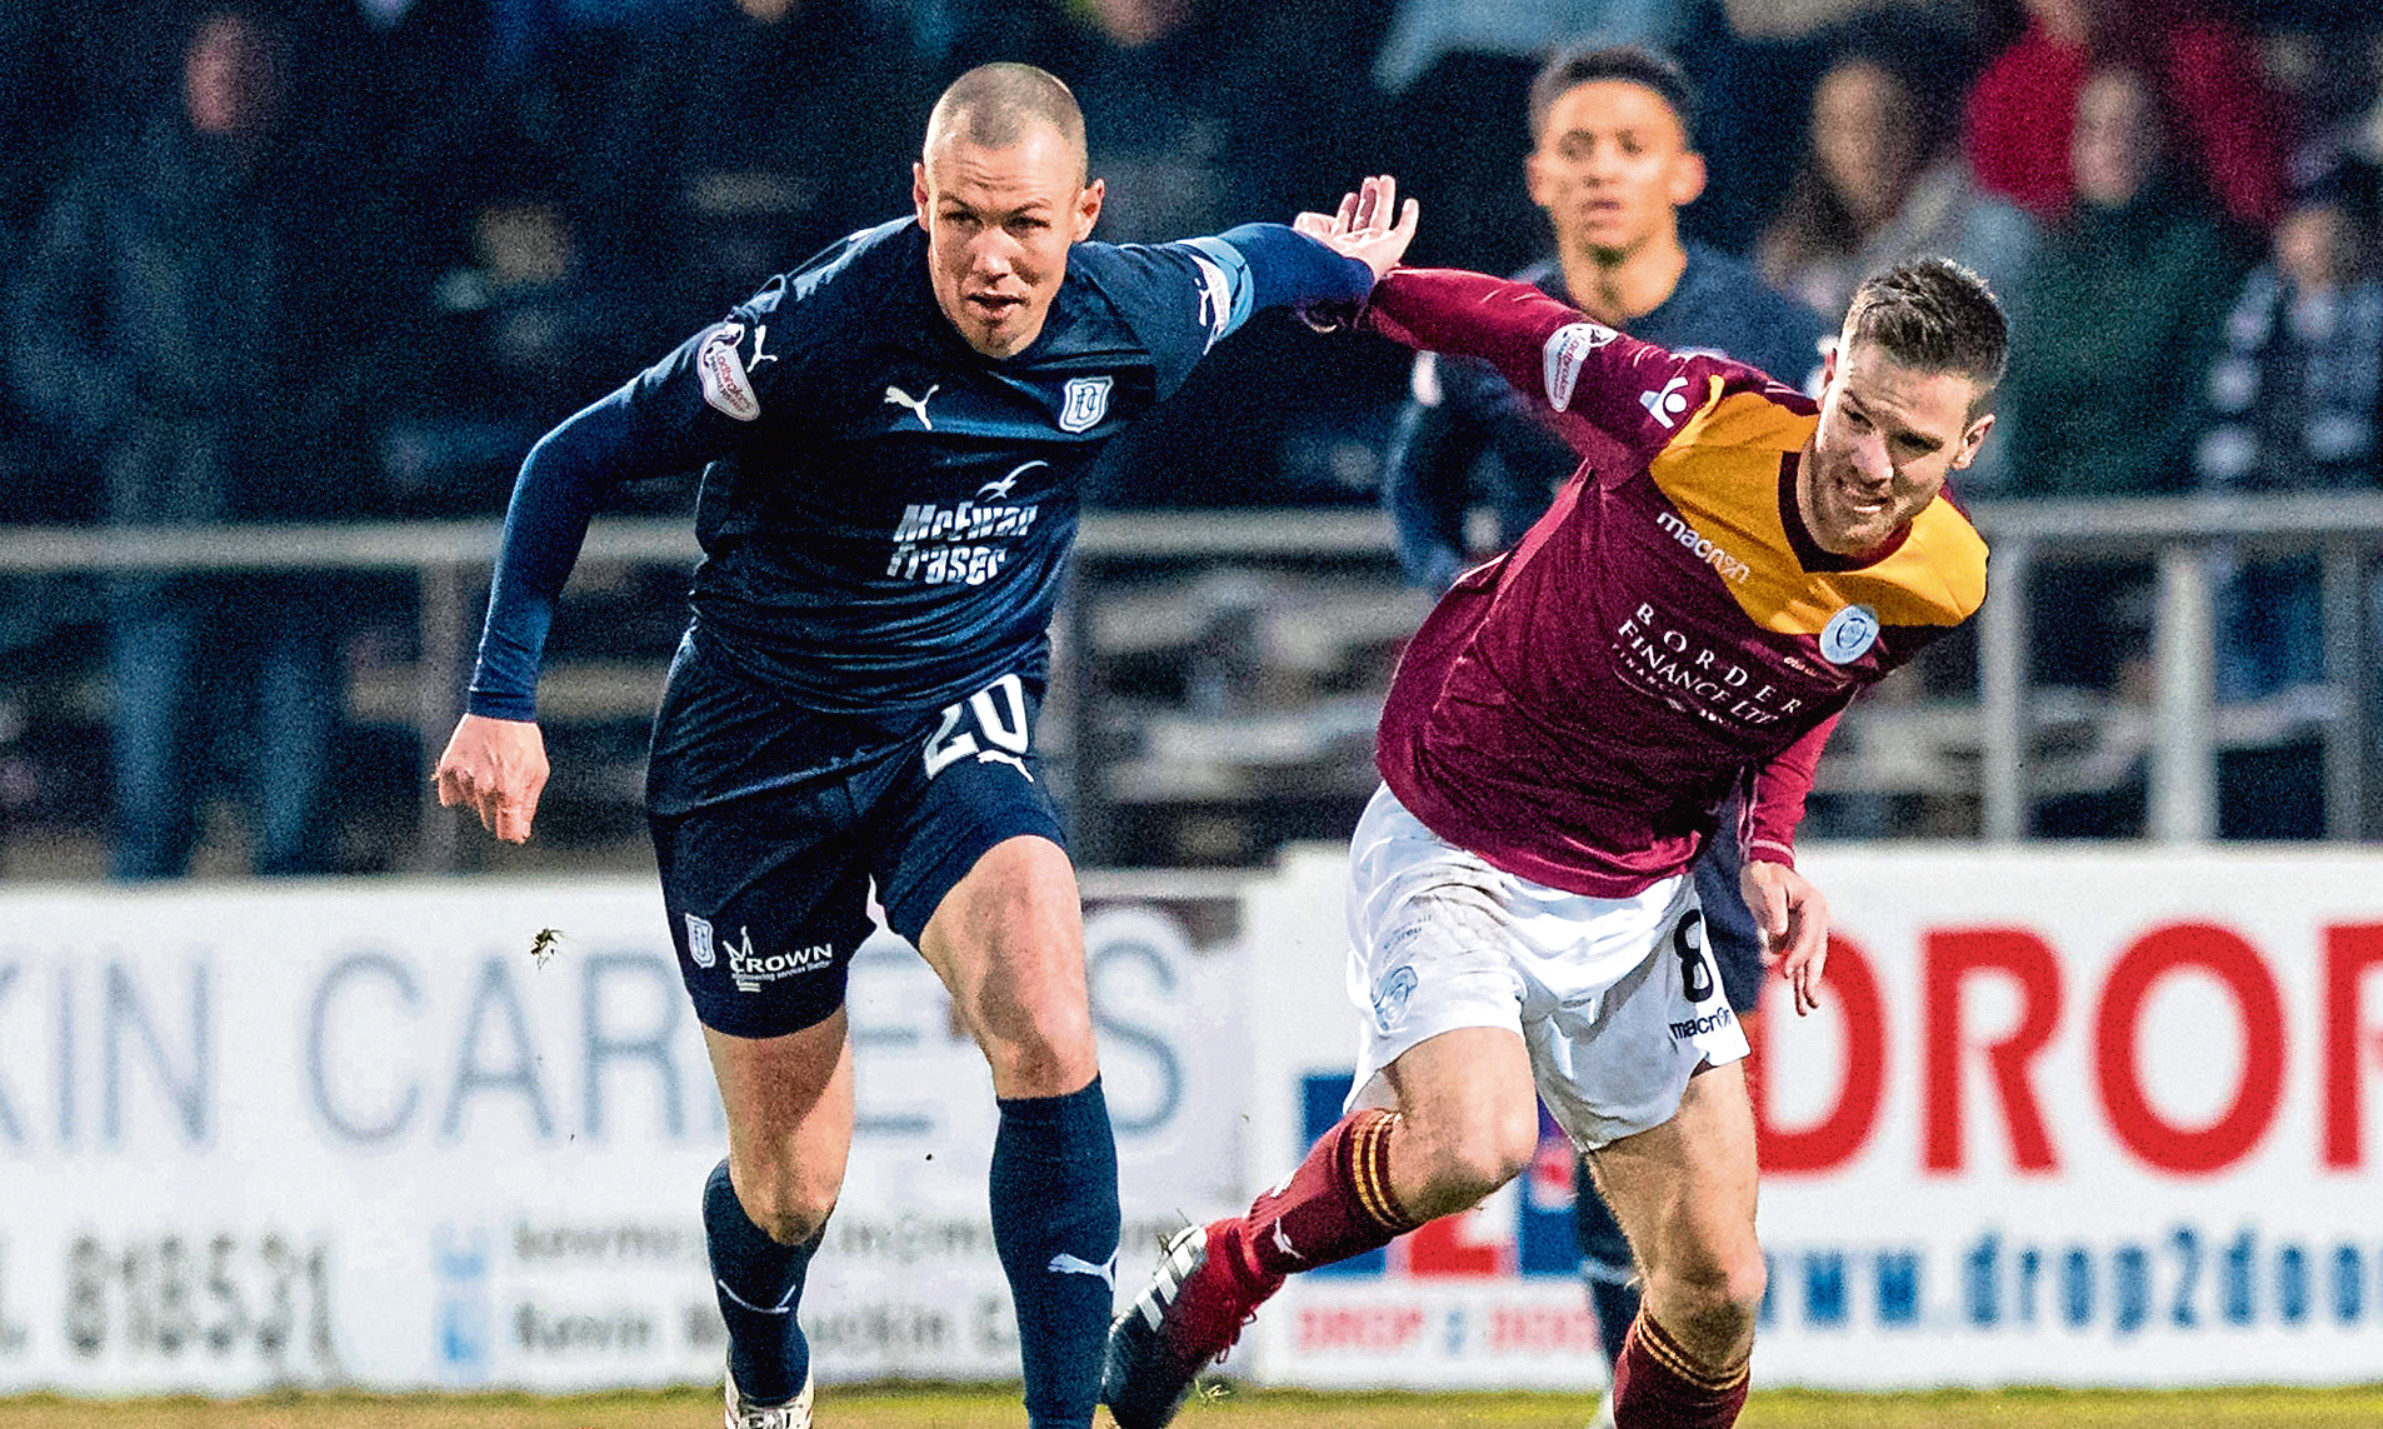 Kenny Miller in action for the Dark Blues.